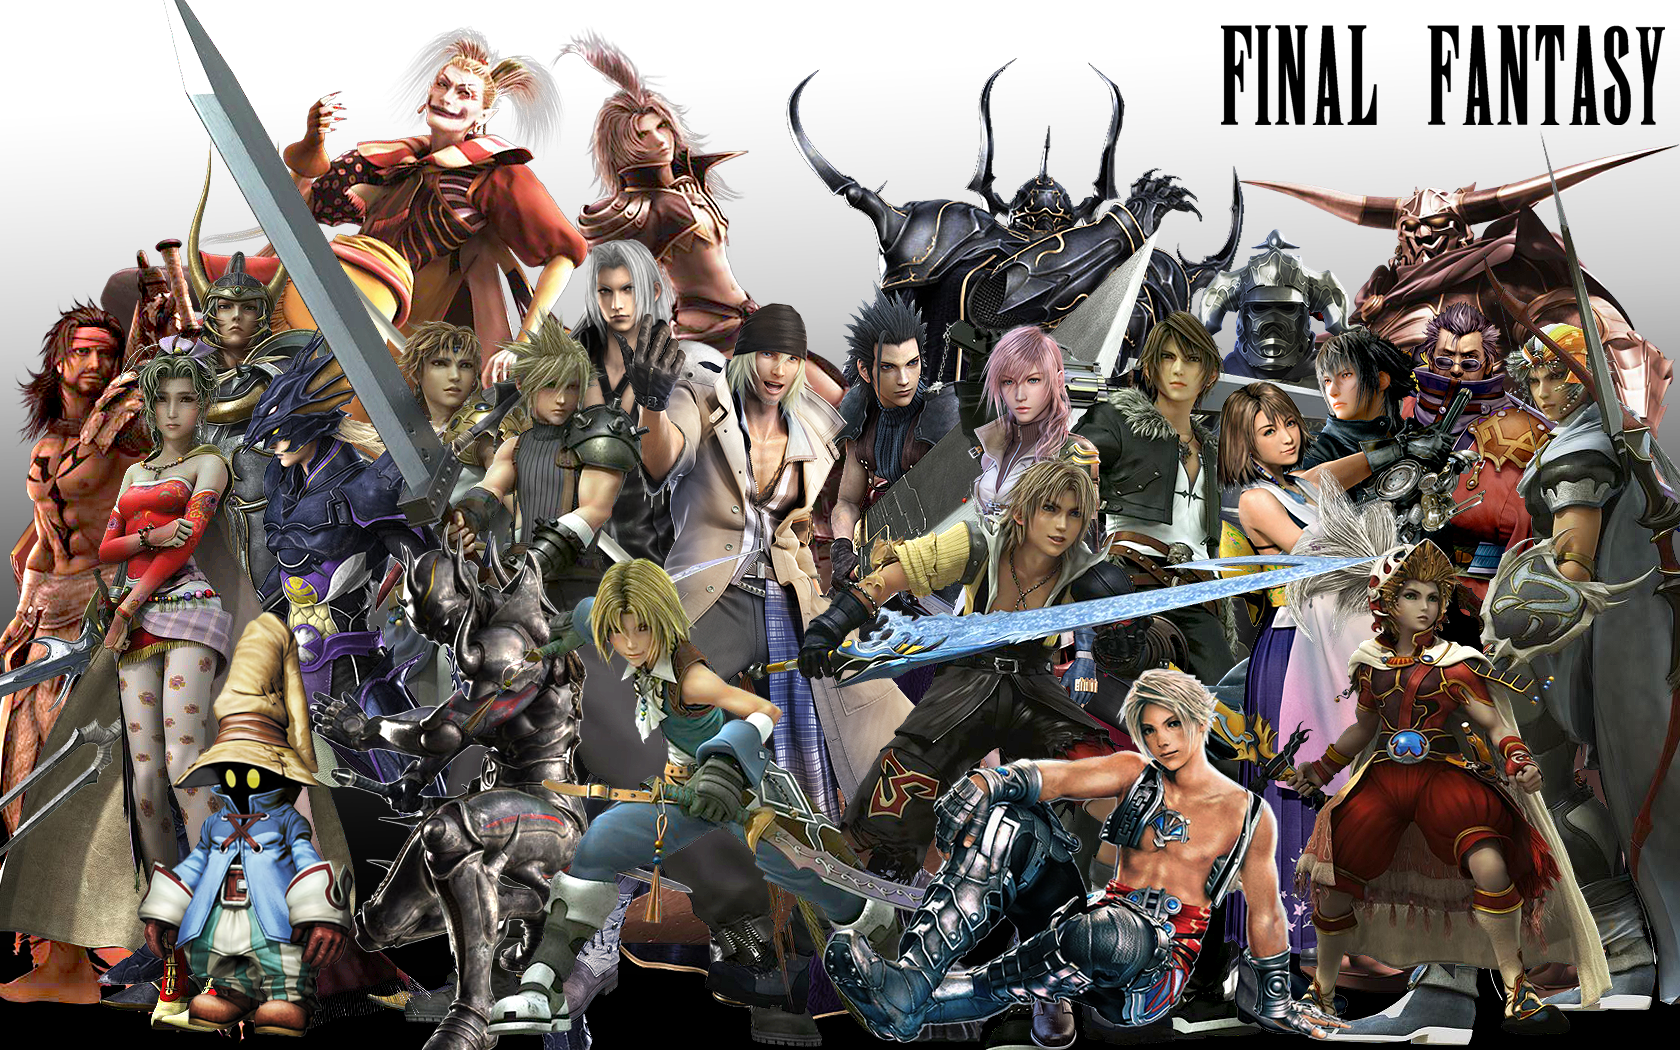 final fantasy wallpaper Final Fantasy Wallpaper 1680x1050